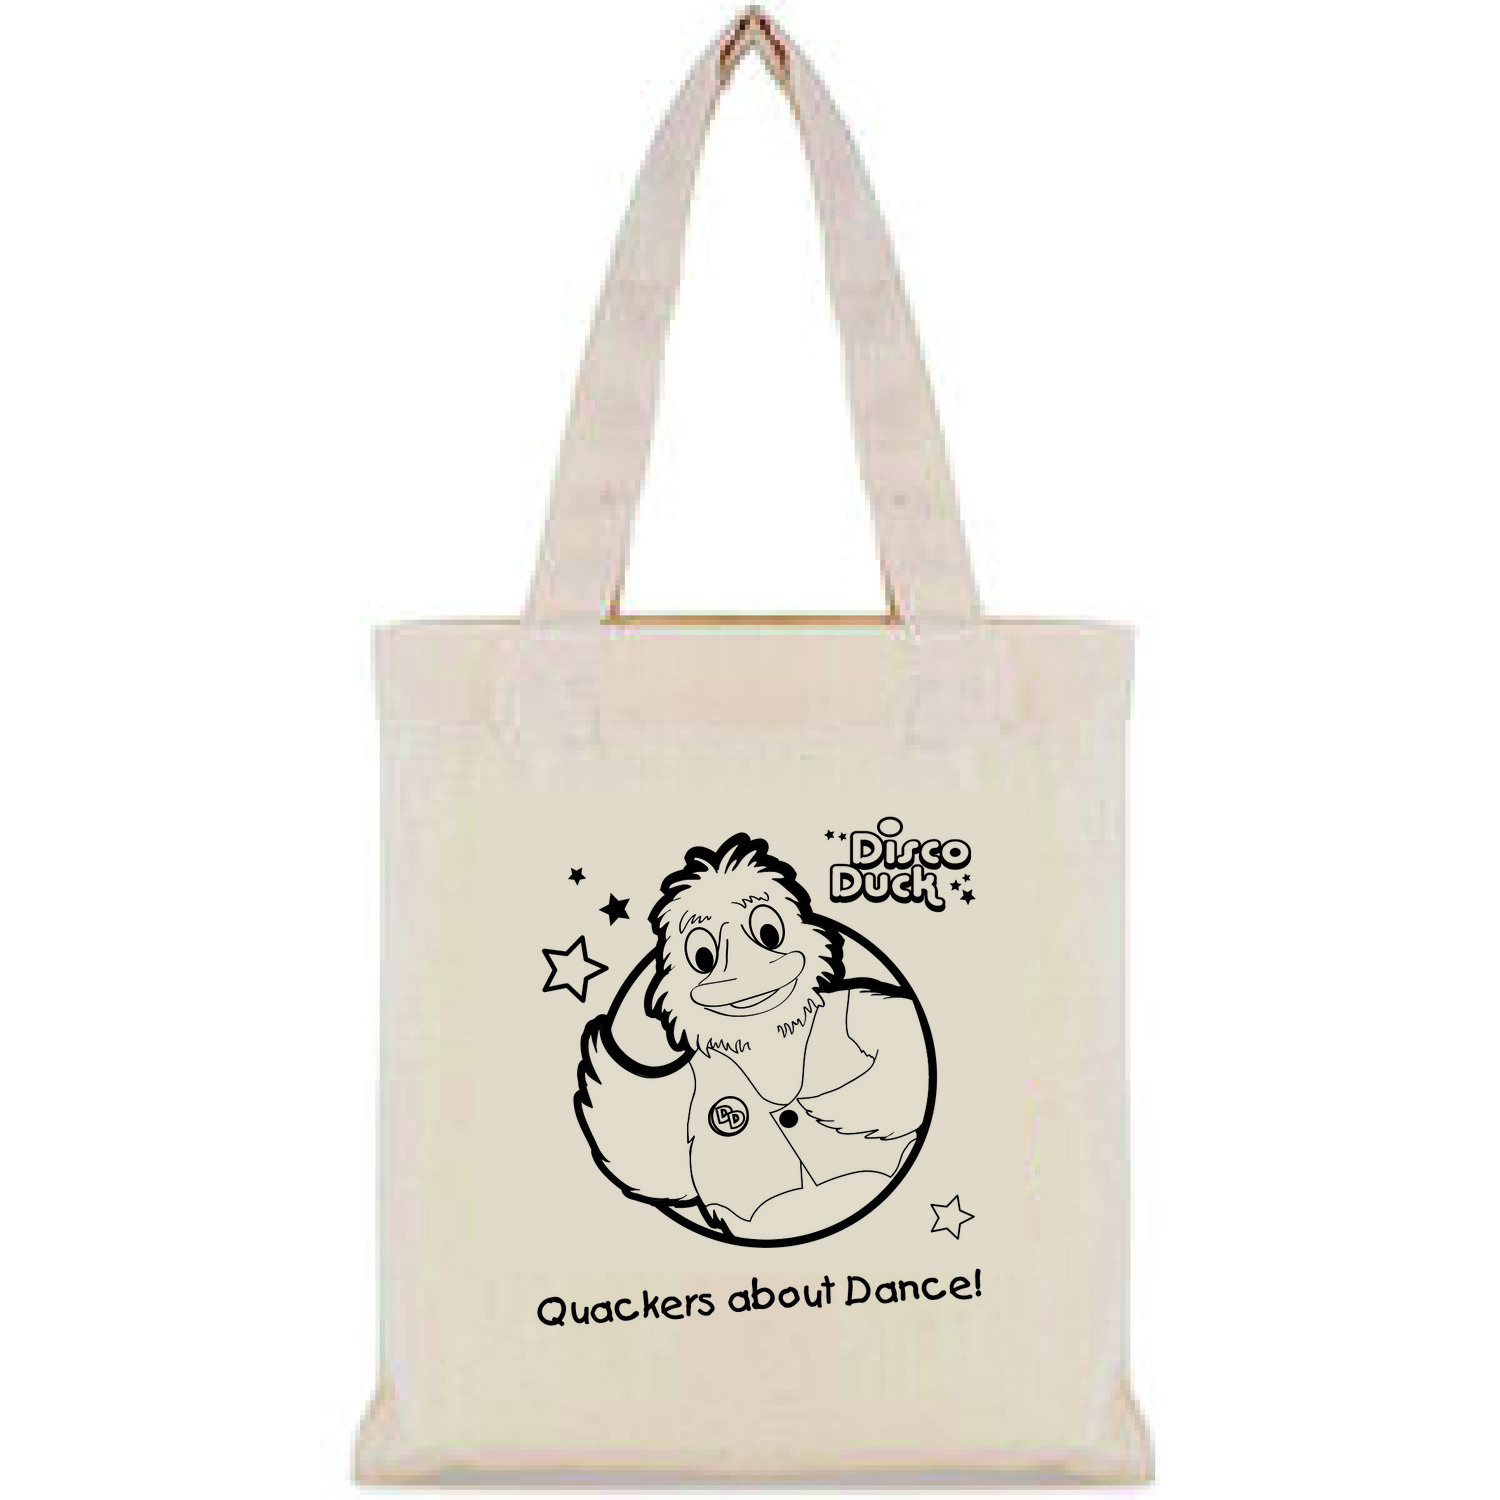 Small cotton shopping bag.